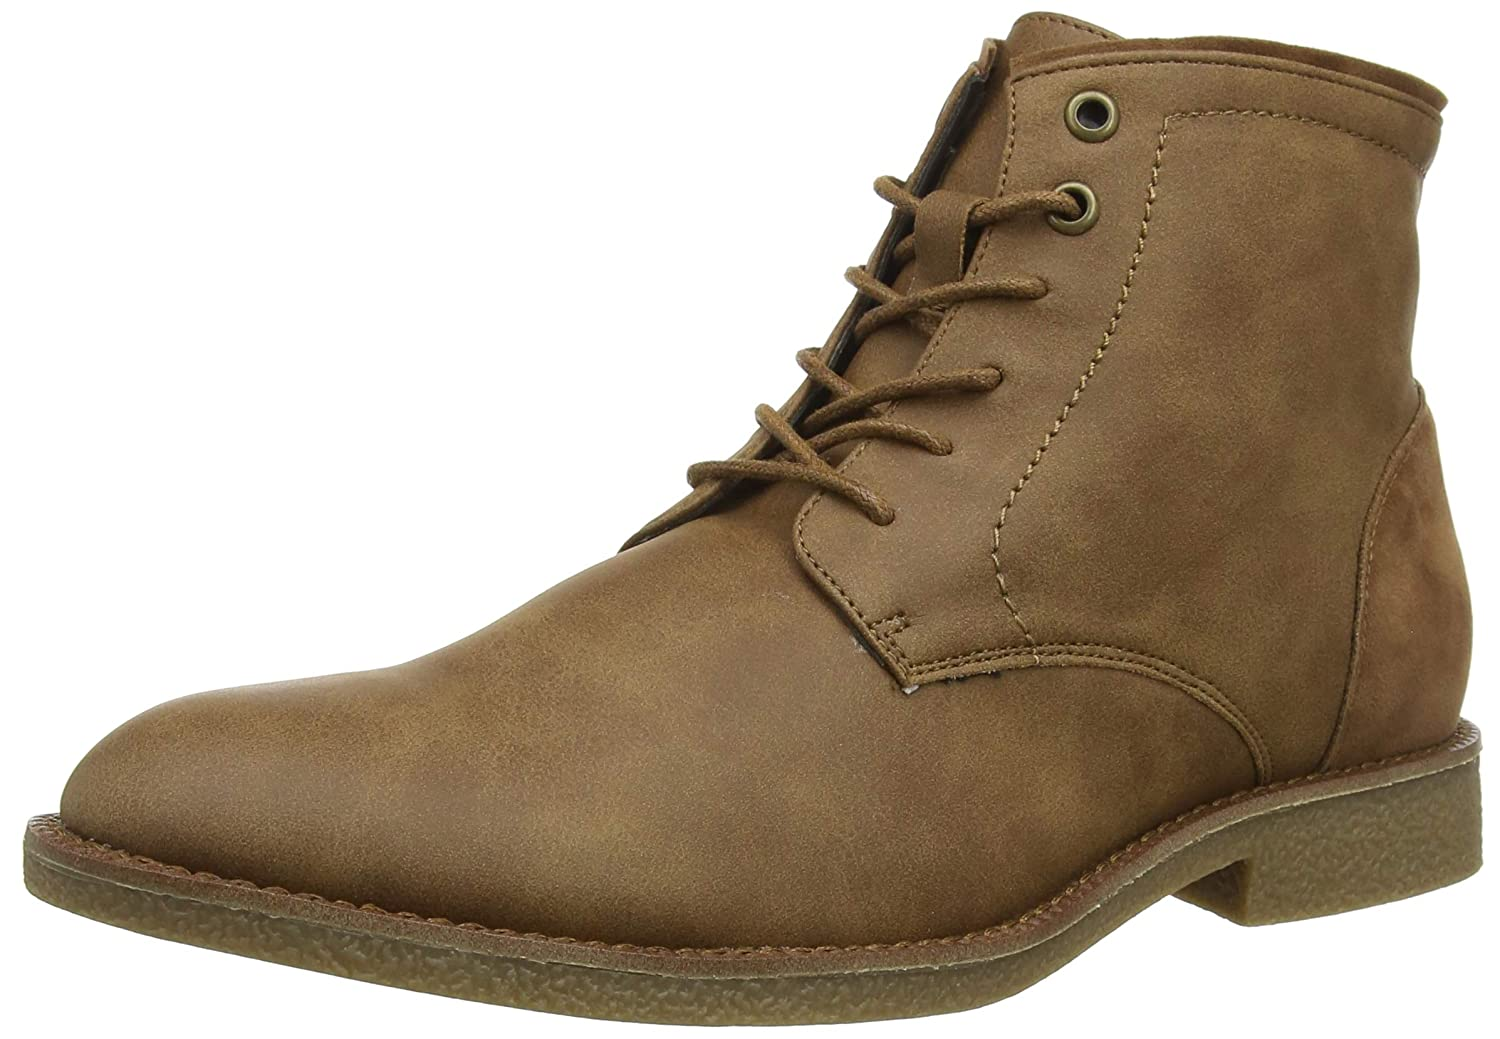 New Look Arizona Zip, Botas Clasicas para Hombre